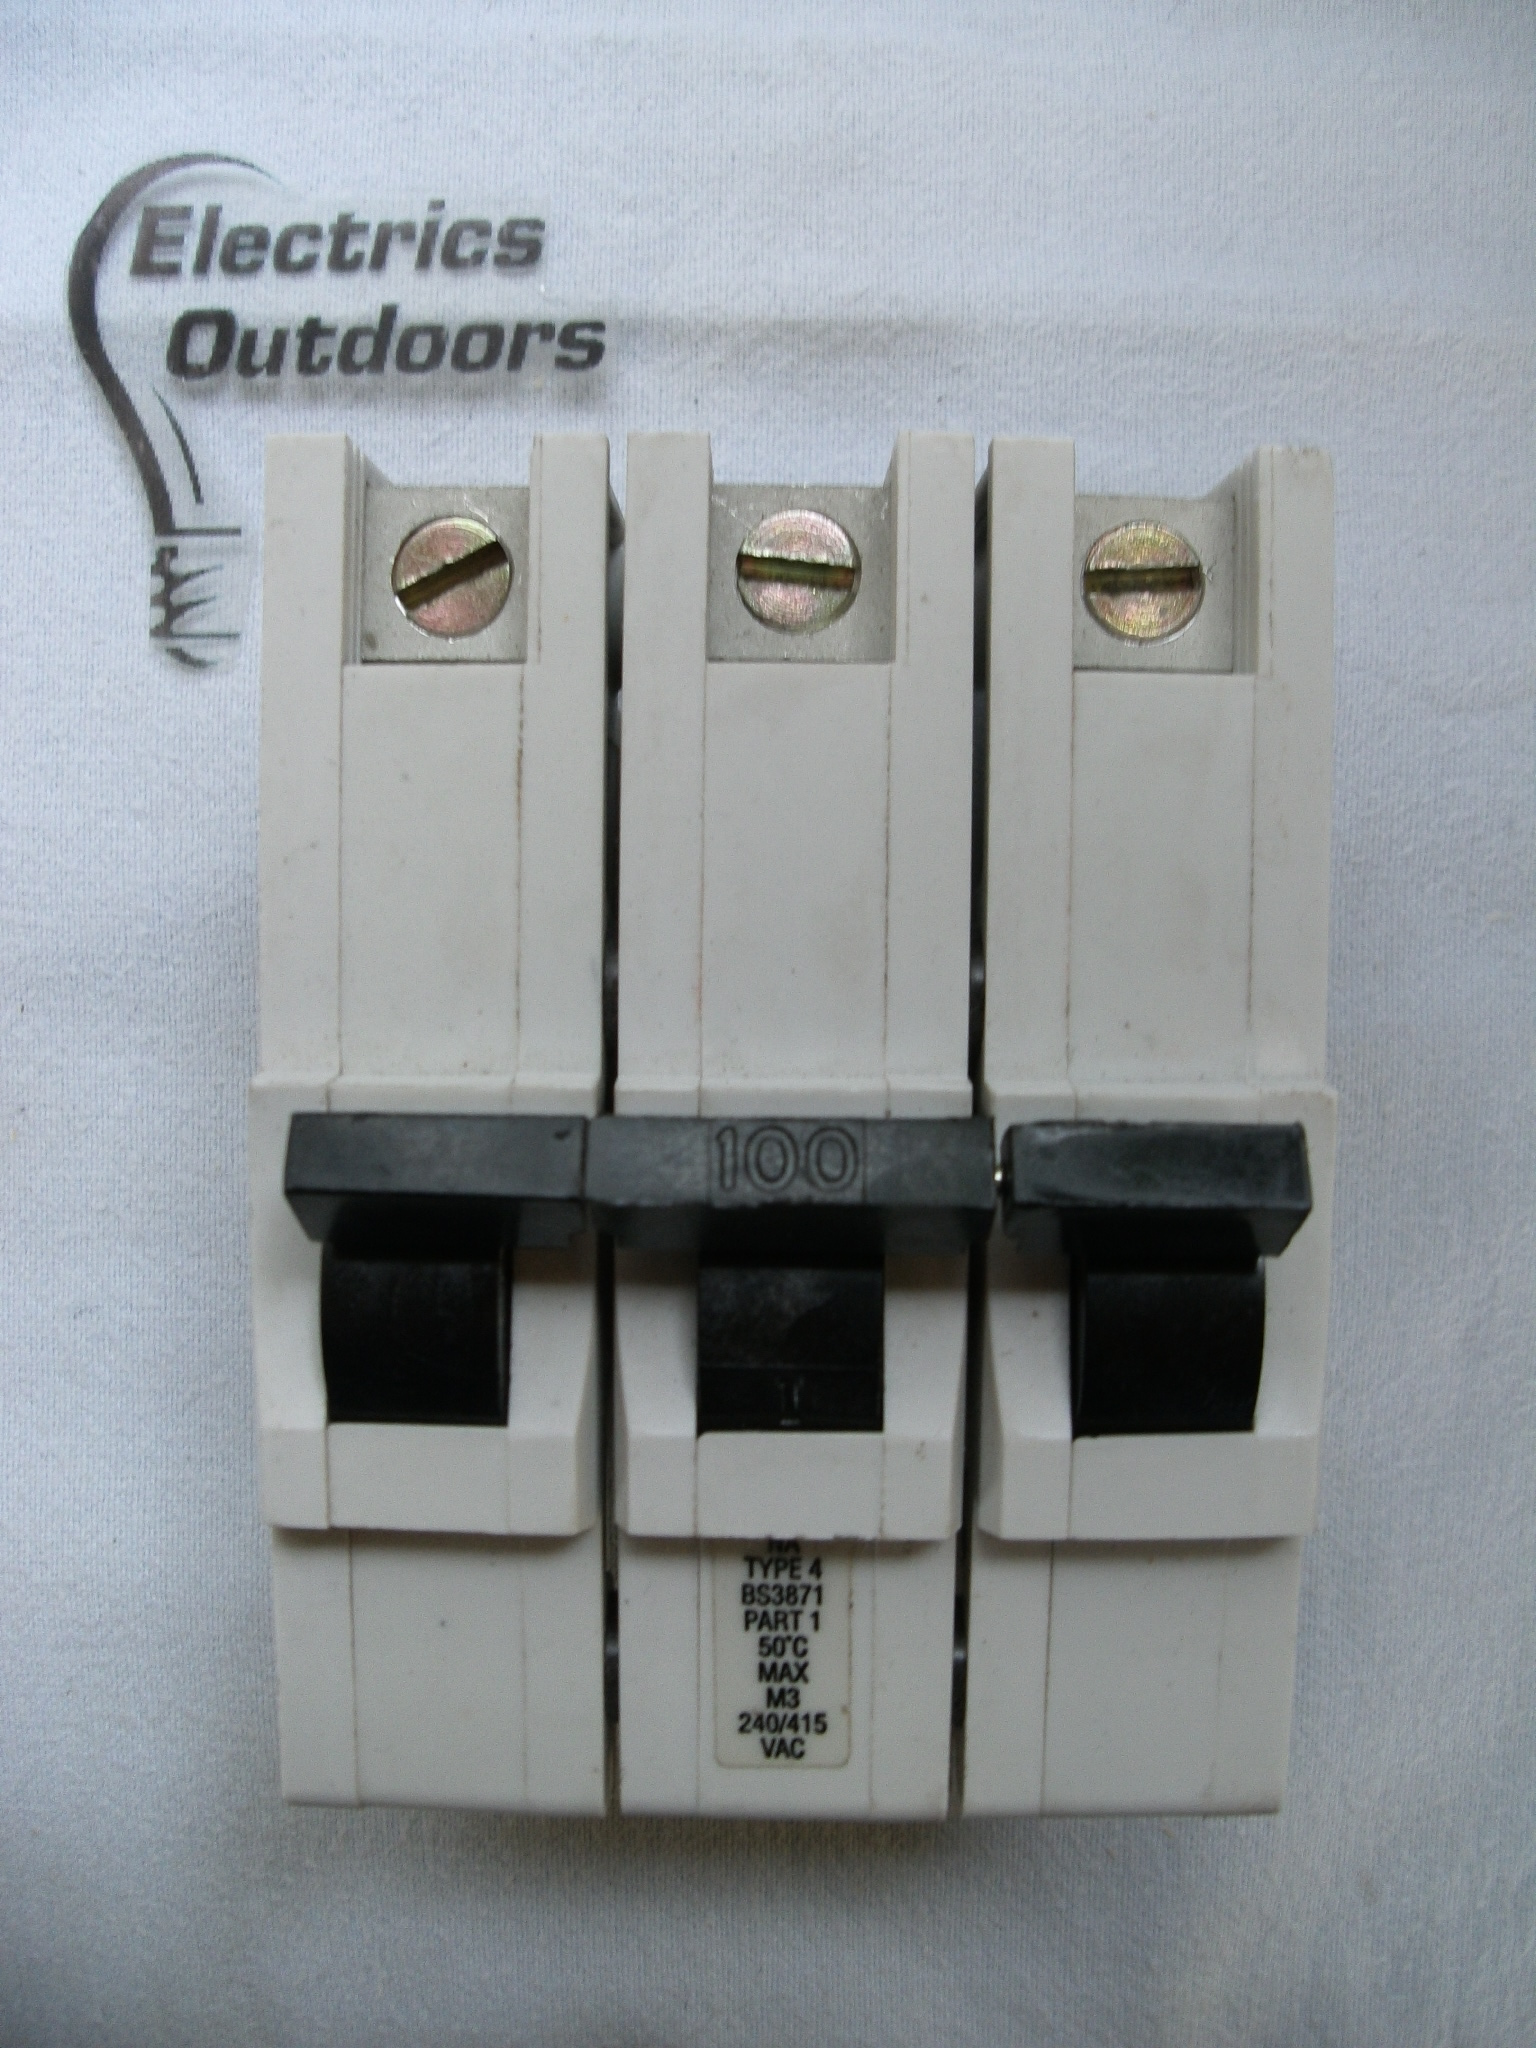 FEDERAL ELECTRIC 100 AMP TYPE 4 M3 TRIPLE POLE MCB CIRCUIT BREAKER STABLOK NA 3